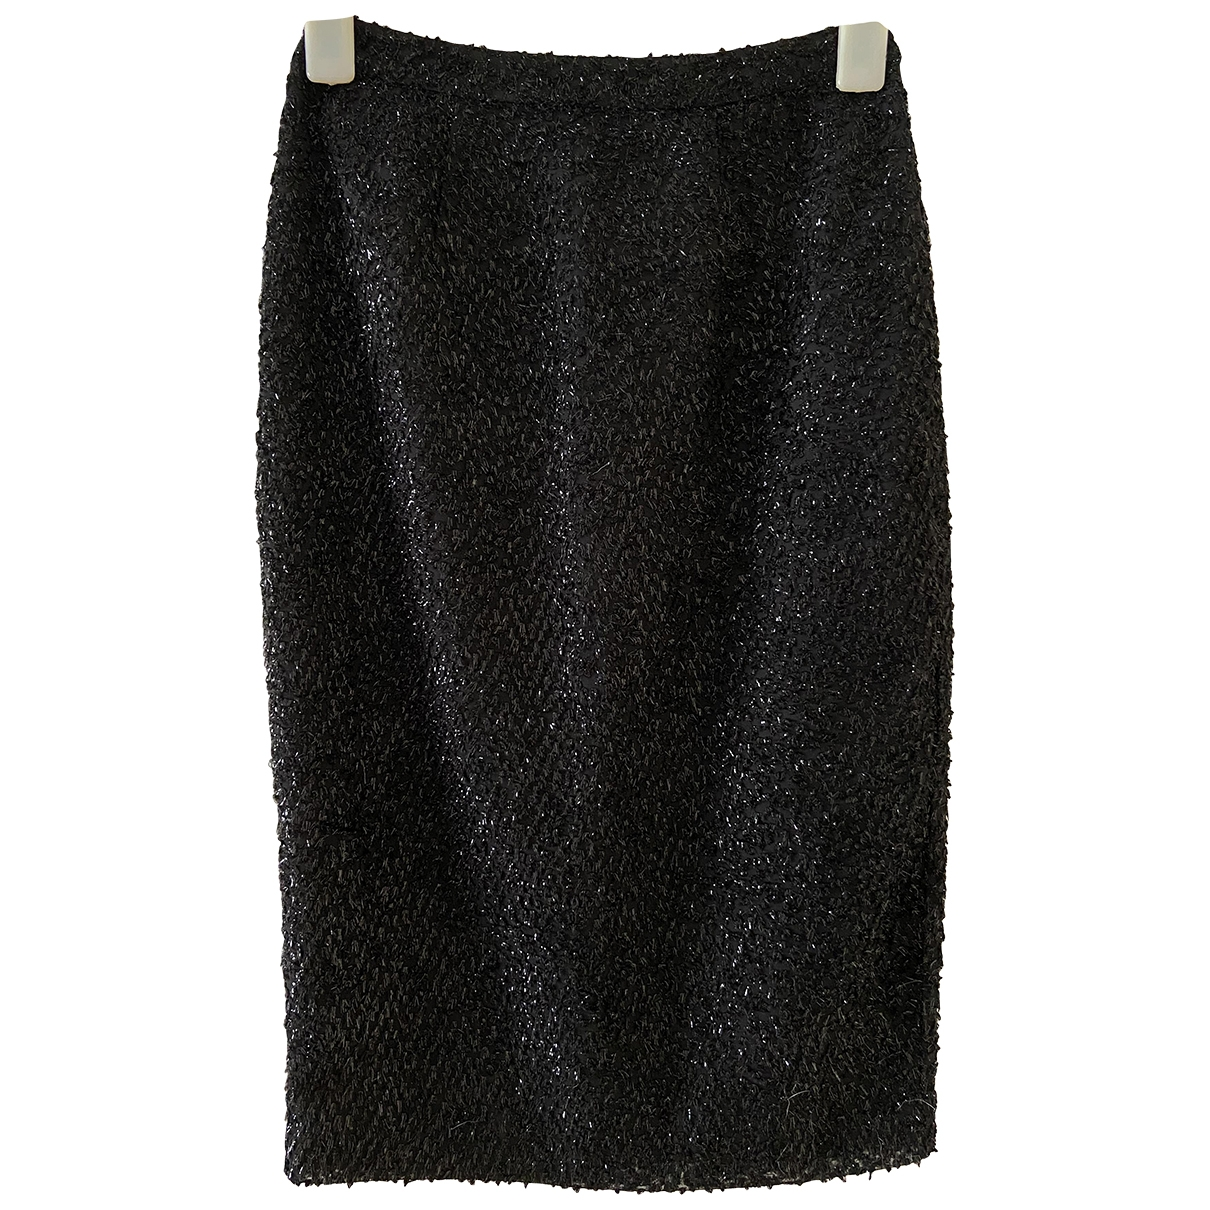 Reiss \N Black Glitter skirt for Women 4 UK